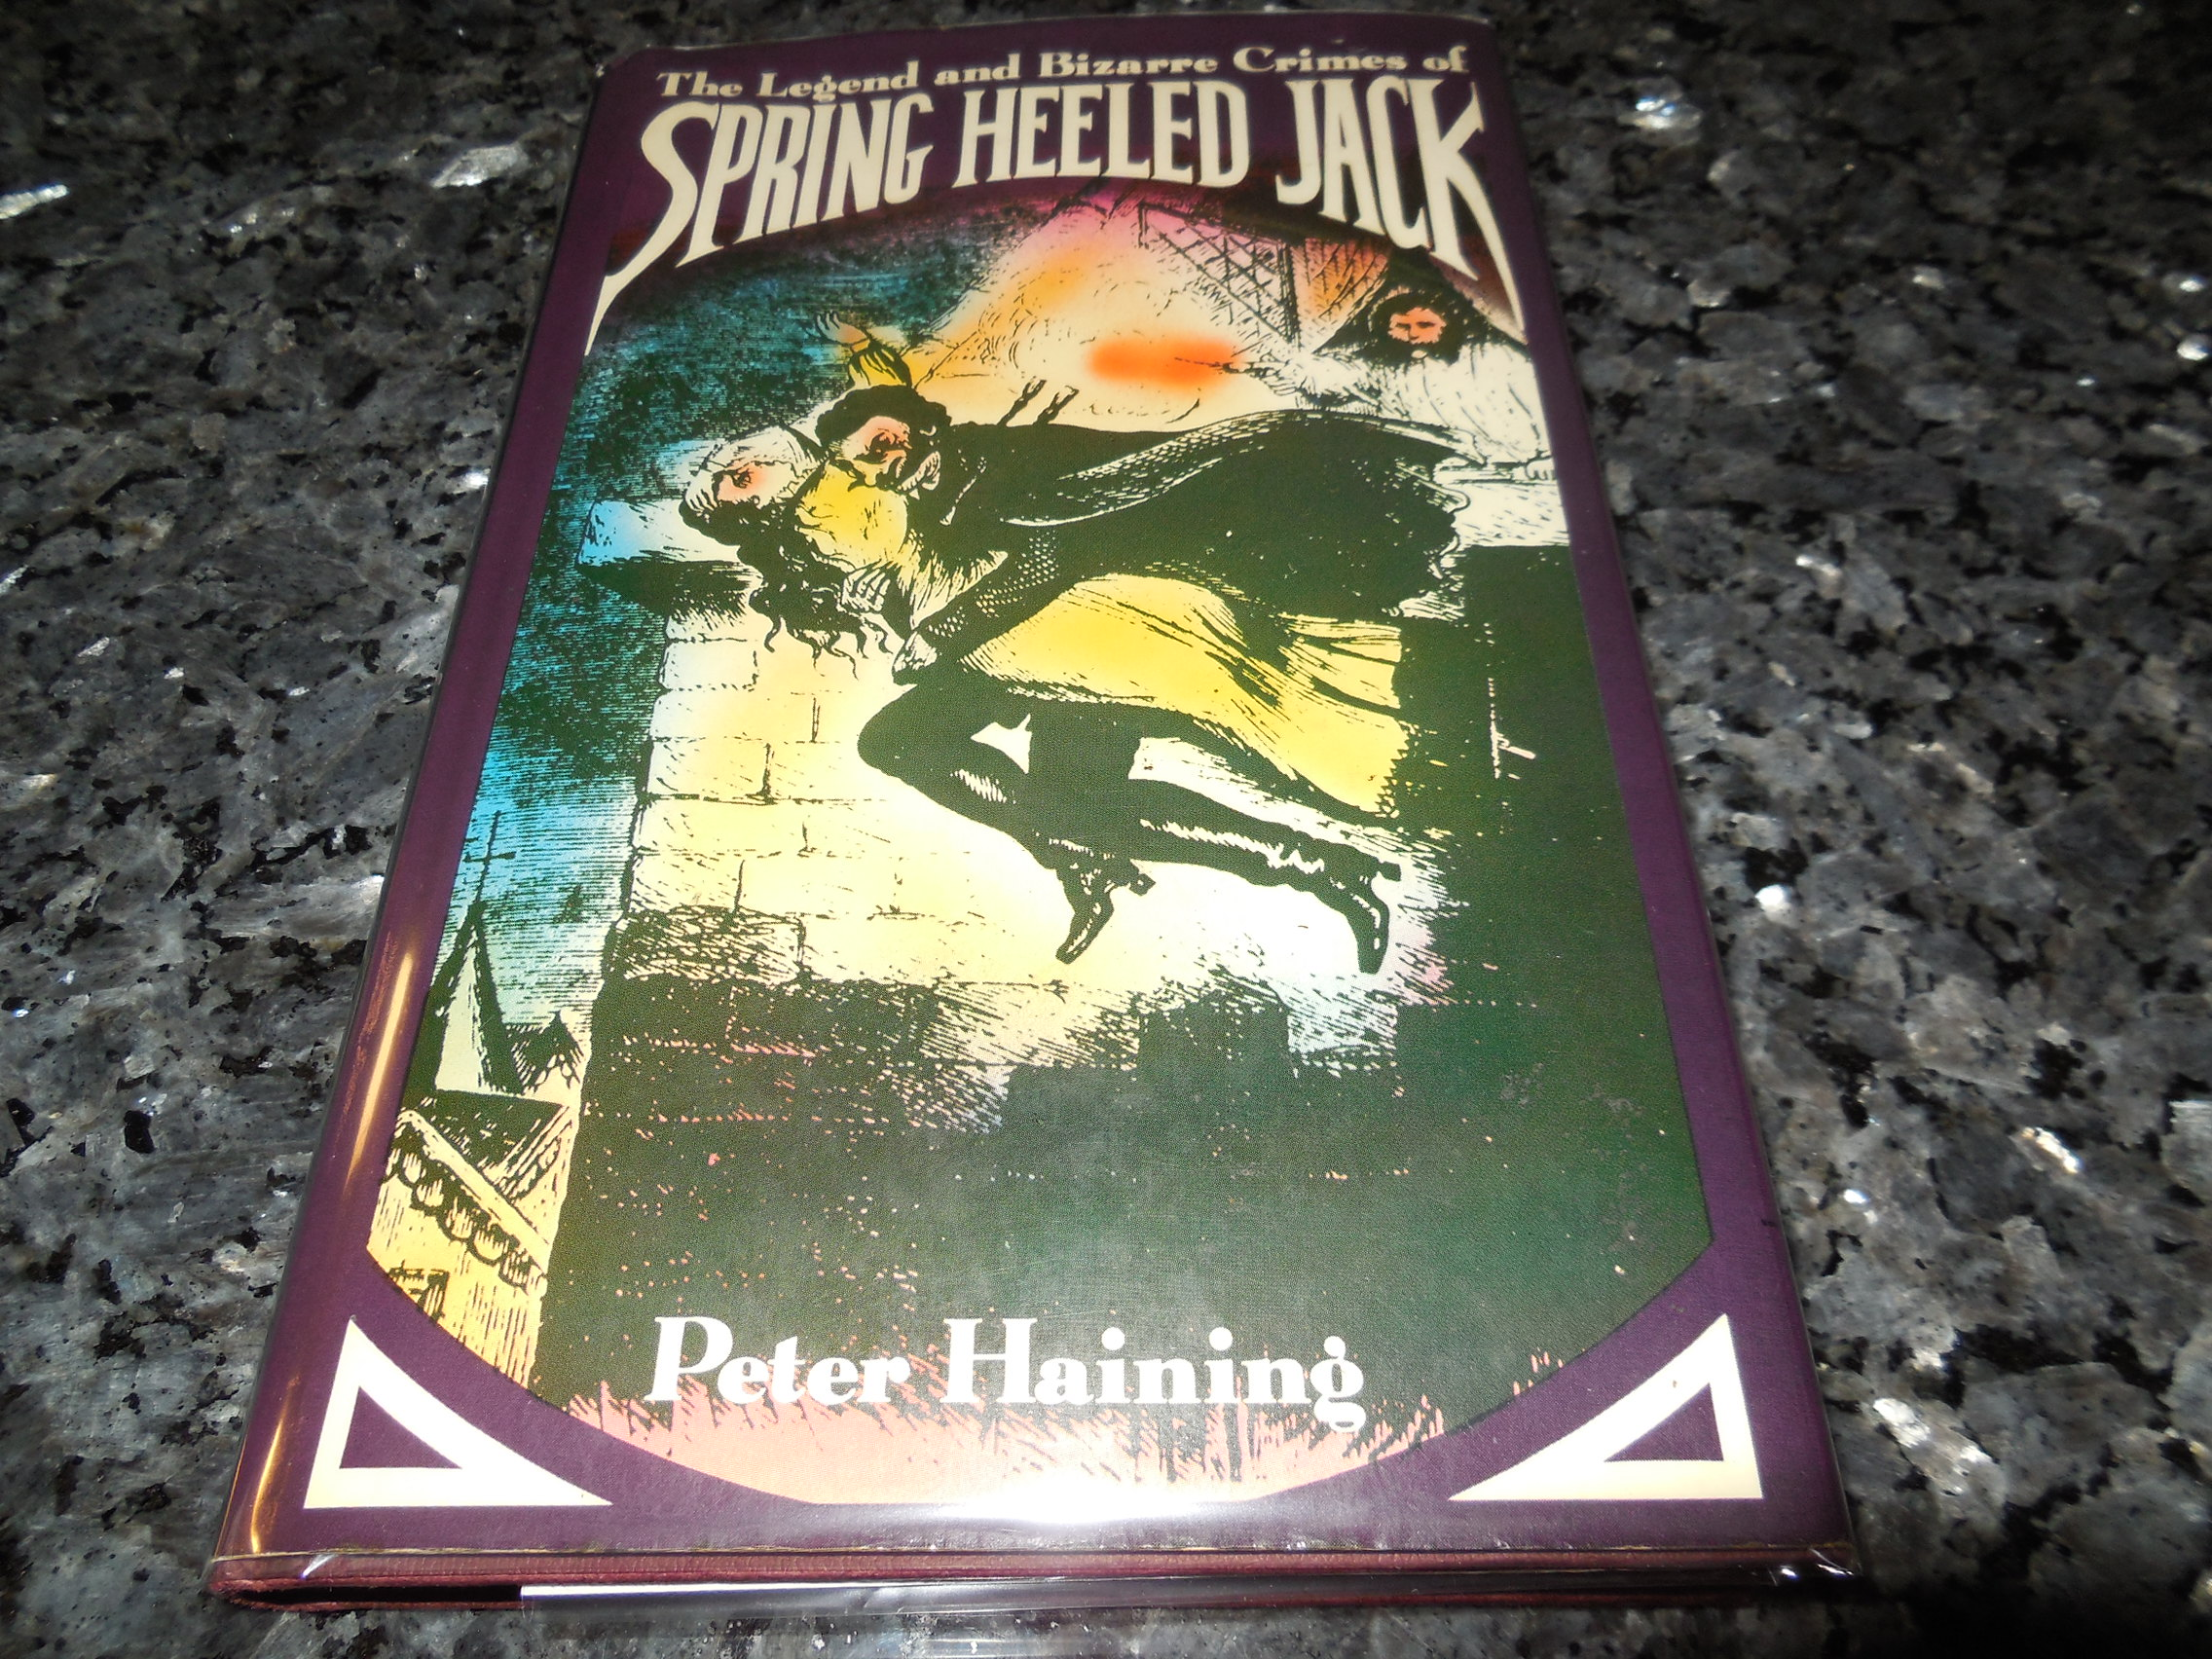 Image for The Legend and Bizarre Crimes of Spring-Heeled Jack